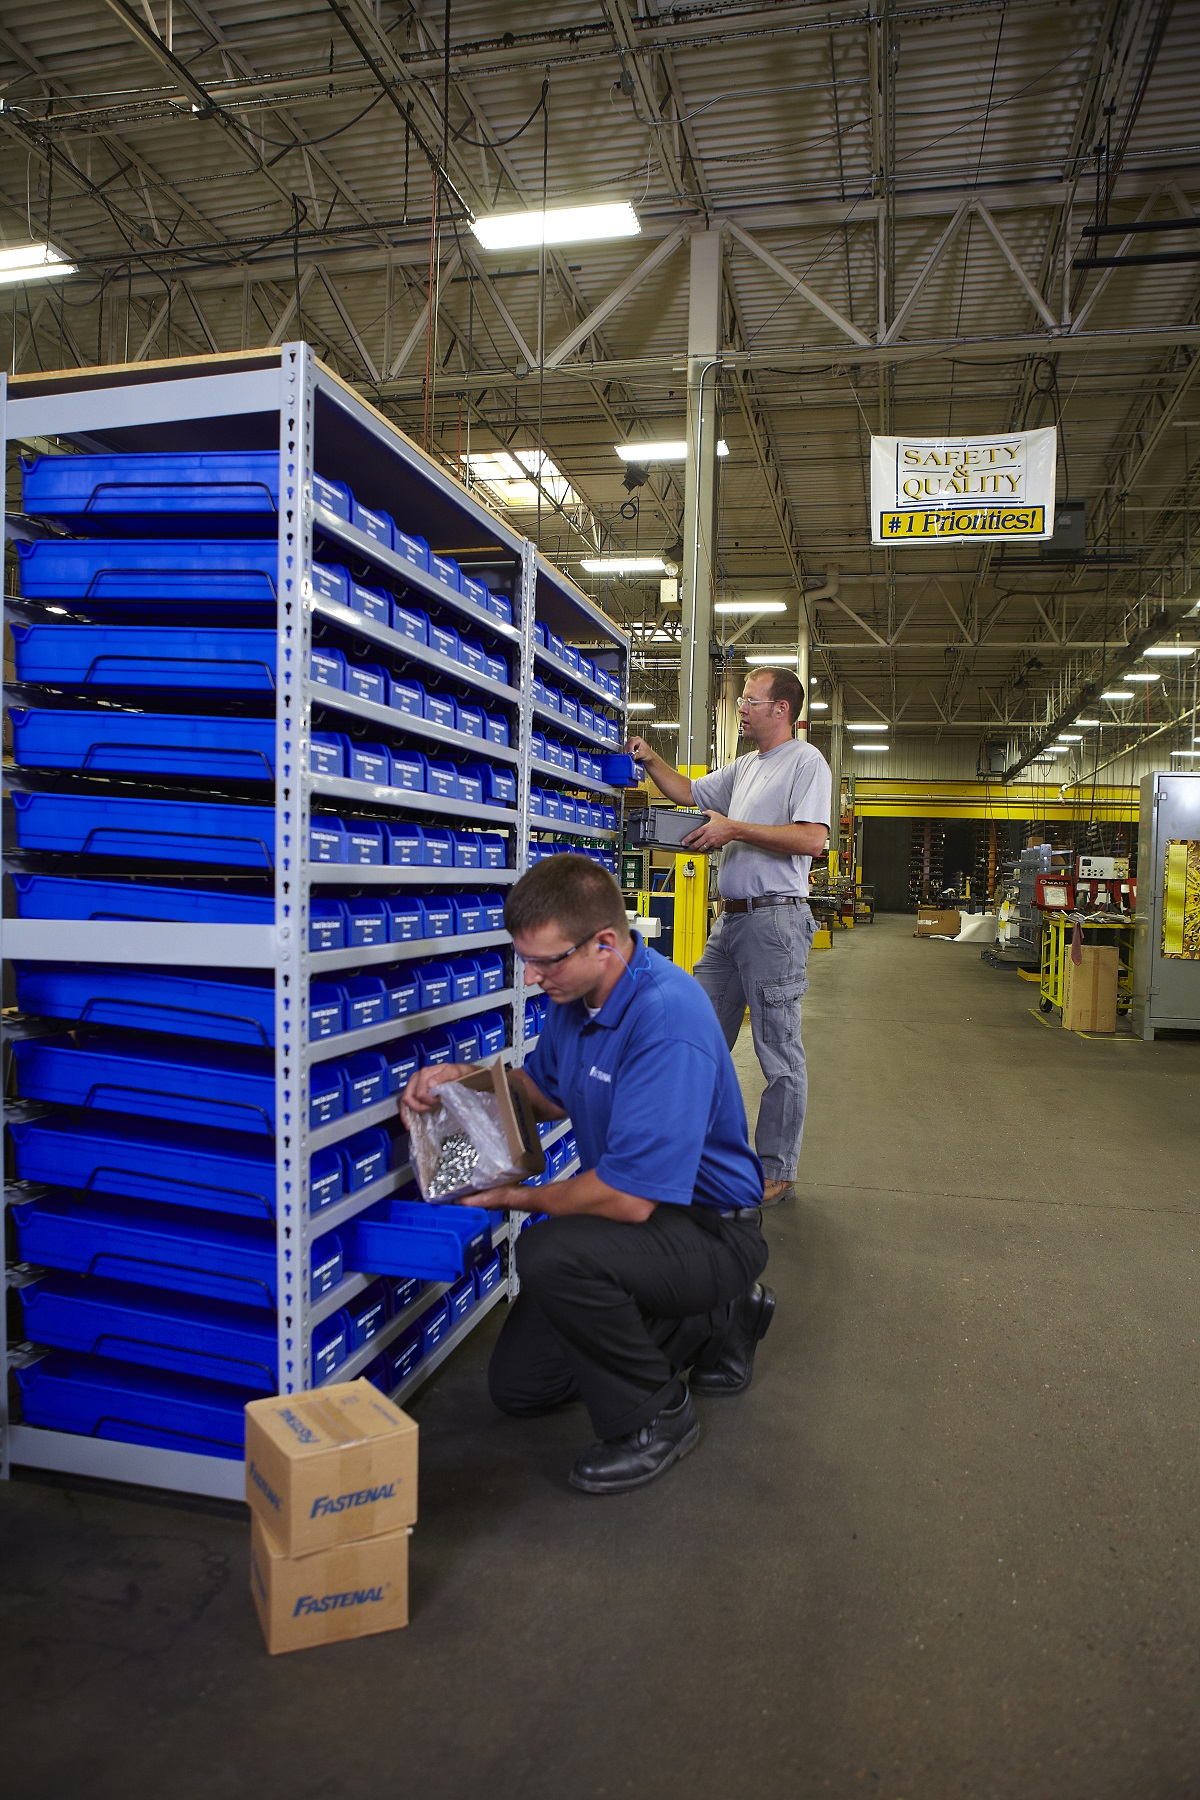 Fmi Fastenal Managed Inventory Fastenal